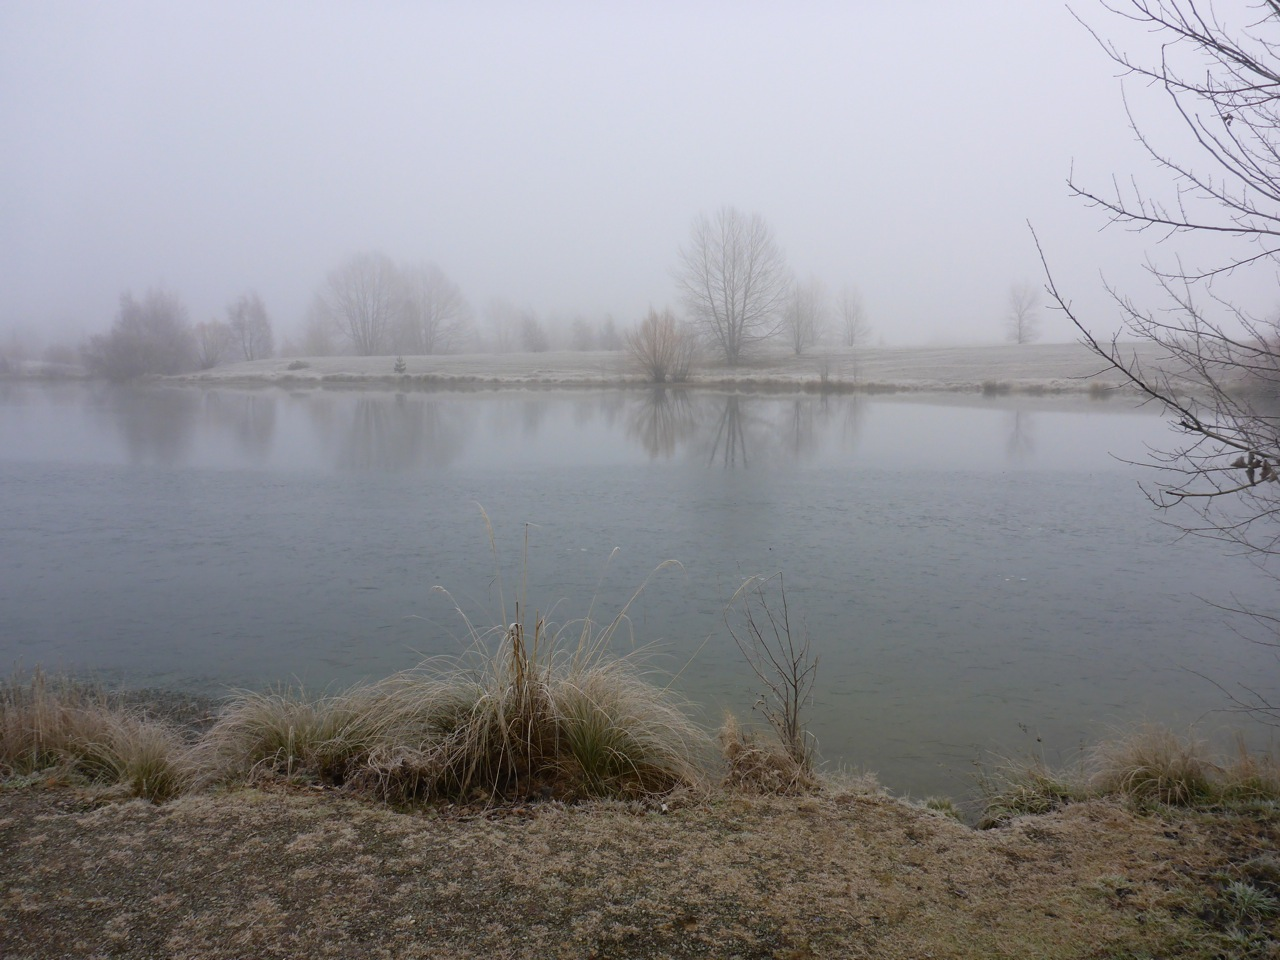 And foggy (Lake is frozen here!)